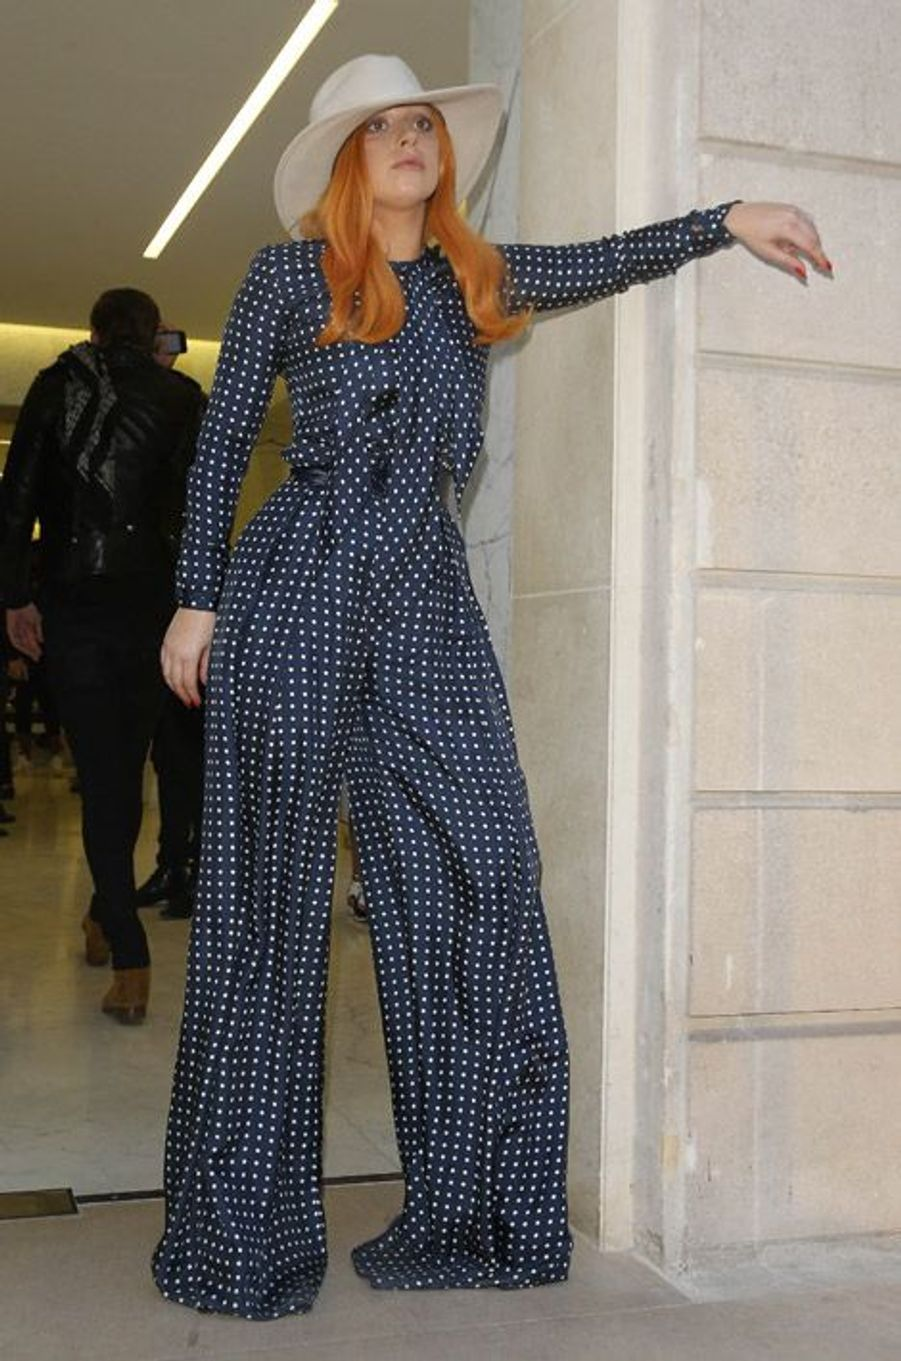 La chanteuse Lady Gaga devant la boutique Saint Laurent à Paris, le 7 mars 2015